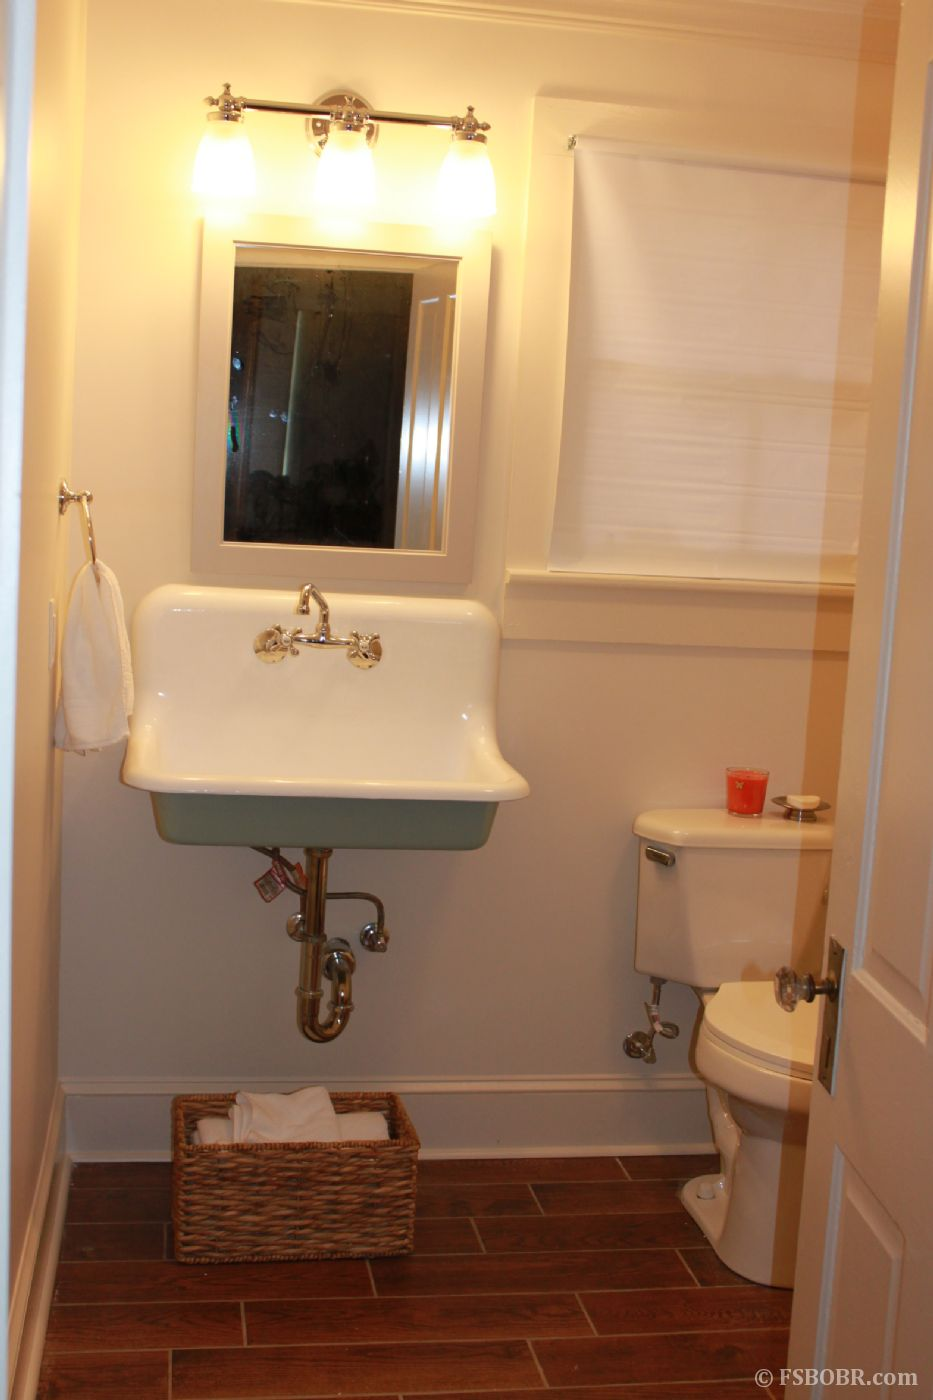 Bathroom Sinks Baton Rouge for saleowner listingsfsbobr. baton rouge fsbo and